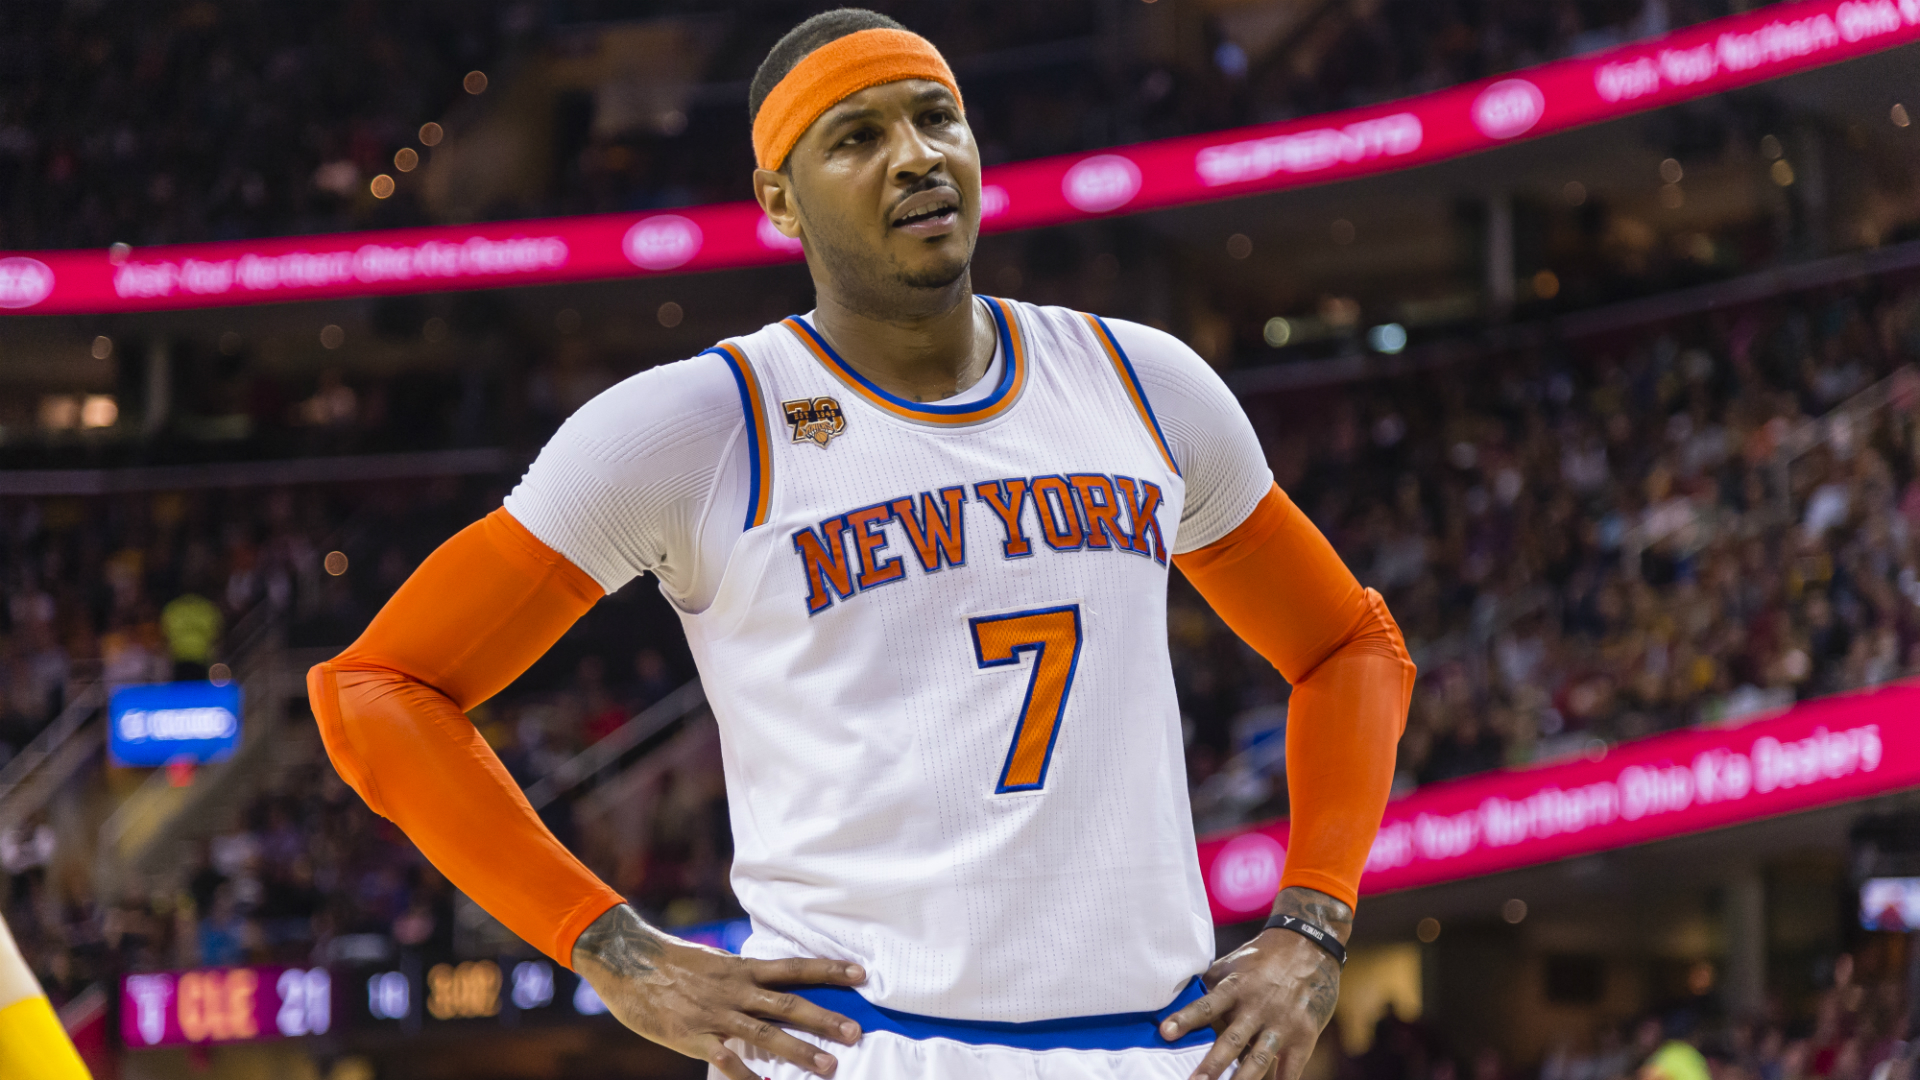 Carmelo Anthony Sees 'Writing on the Wall' in NY